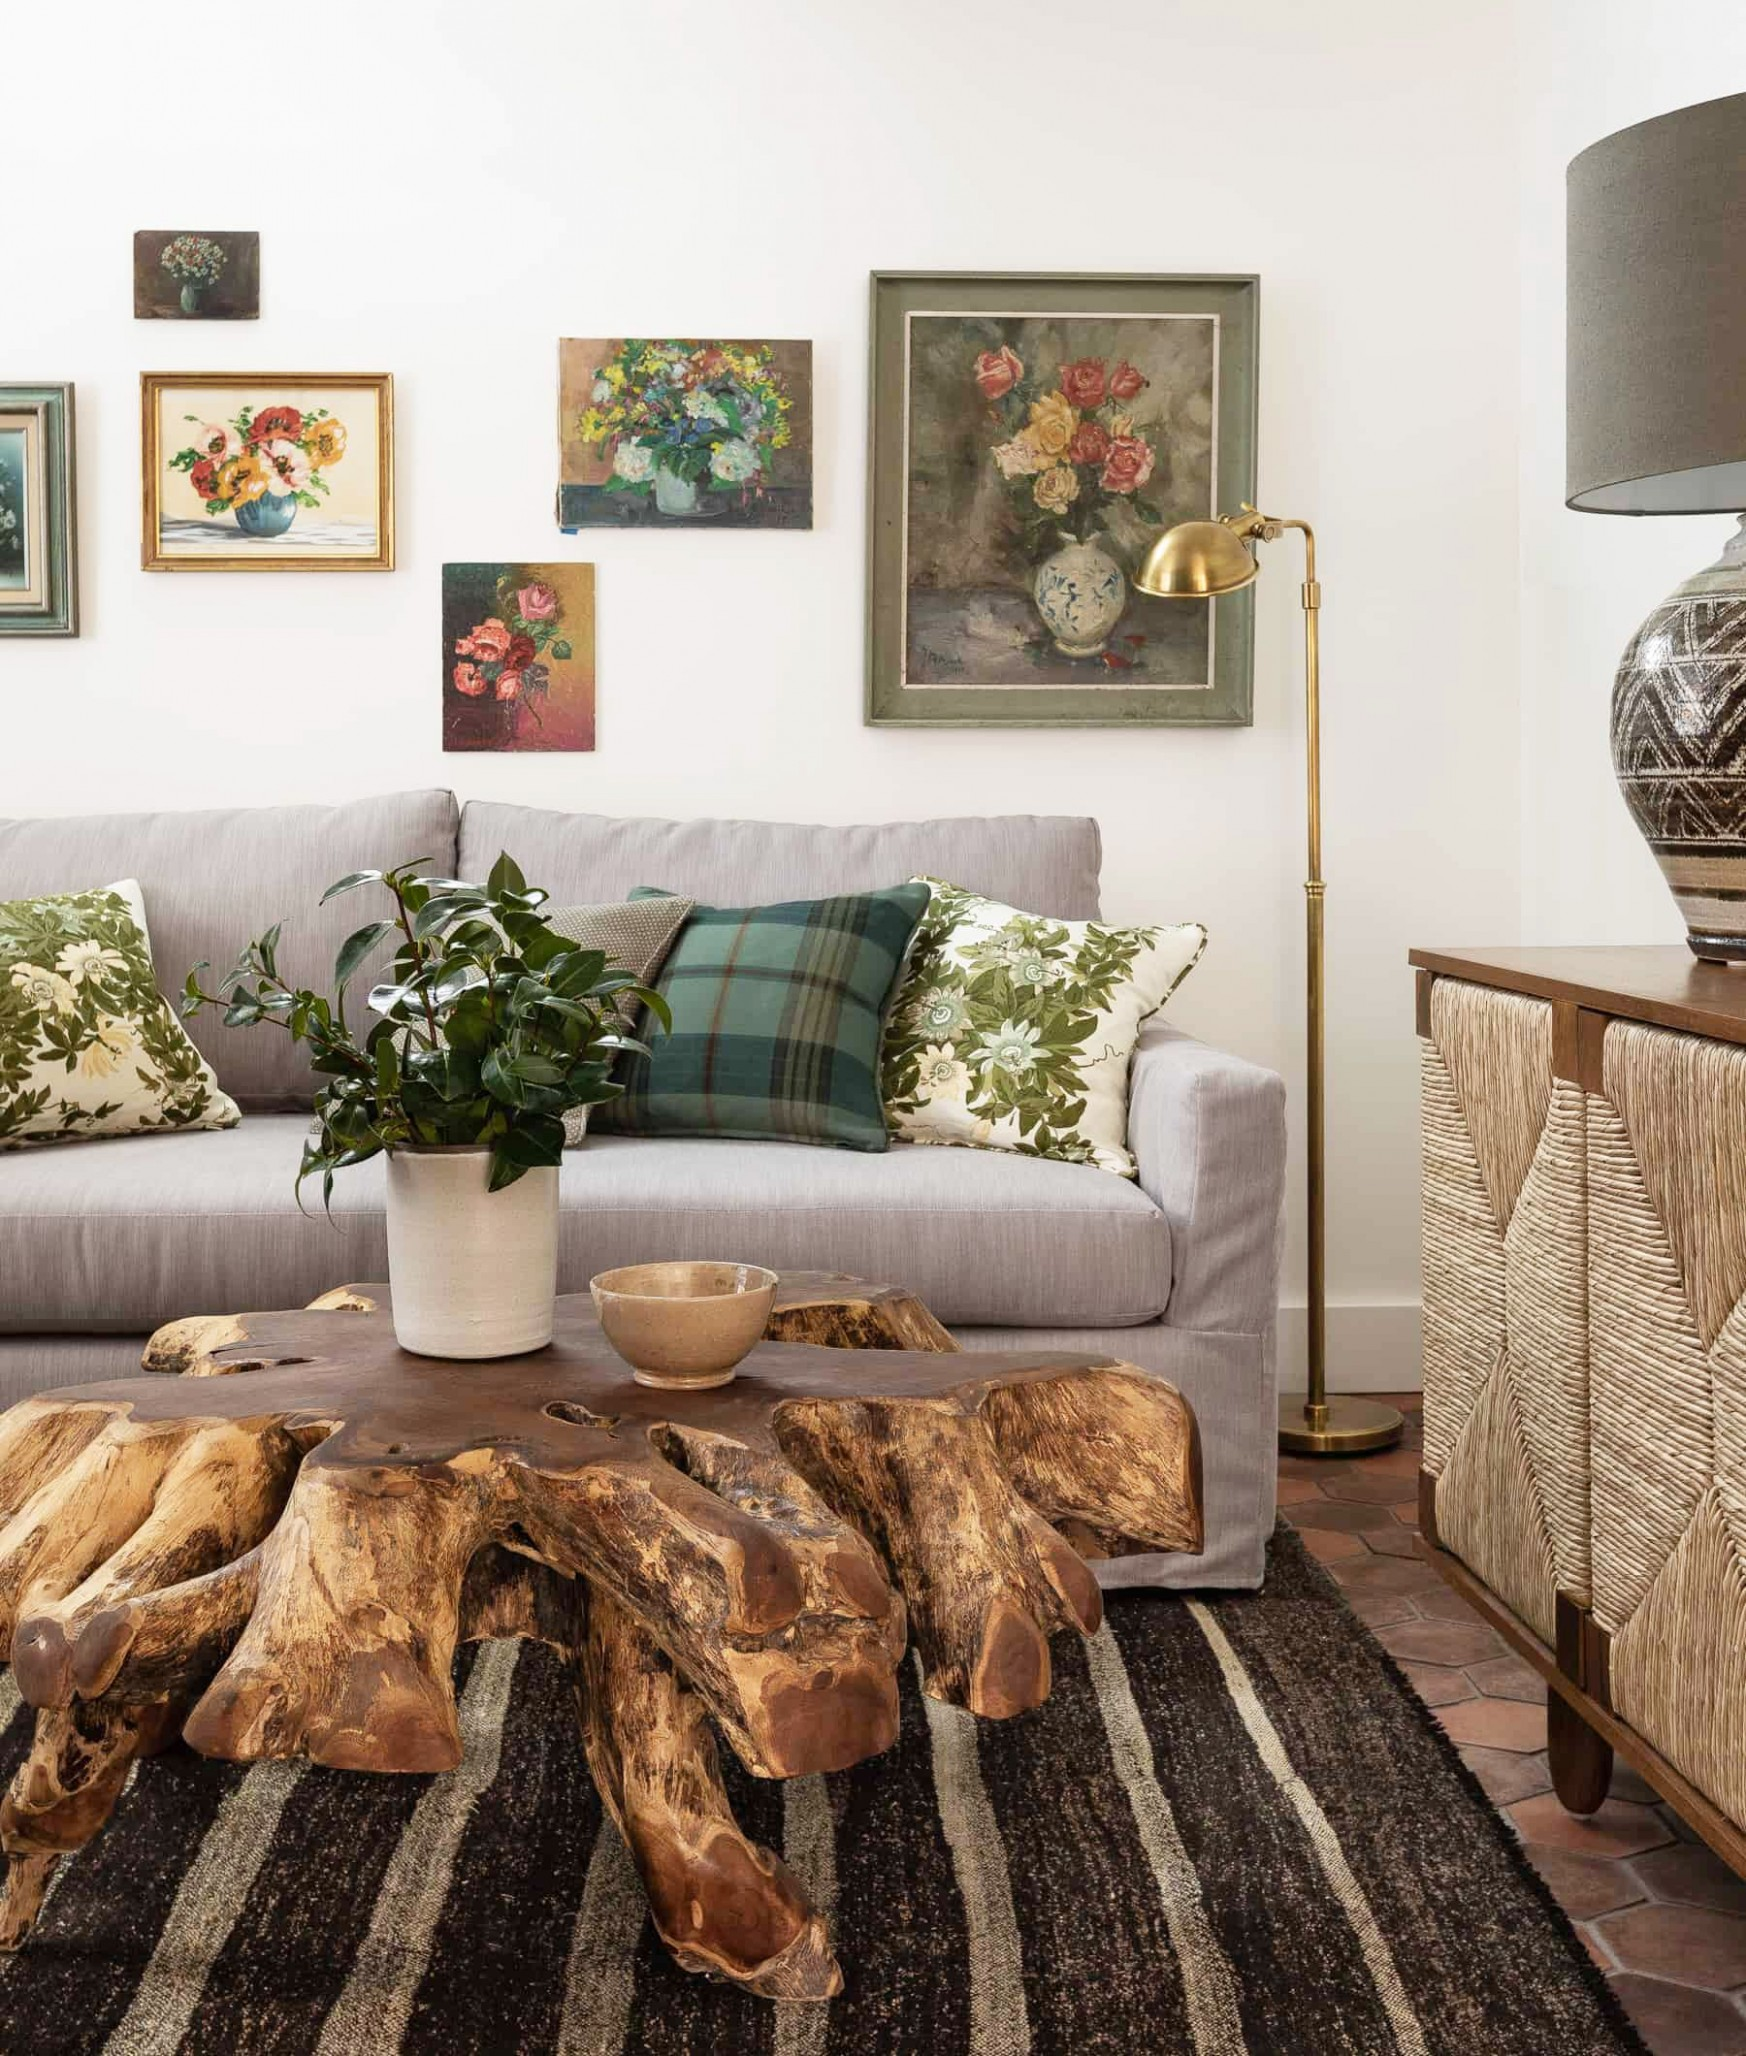 How to Decorate Your First Apartment - First Apartment Decorating  - Apartment Decorating Ideas For Young Adults